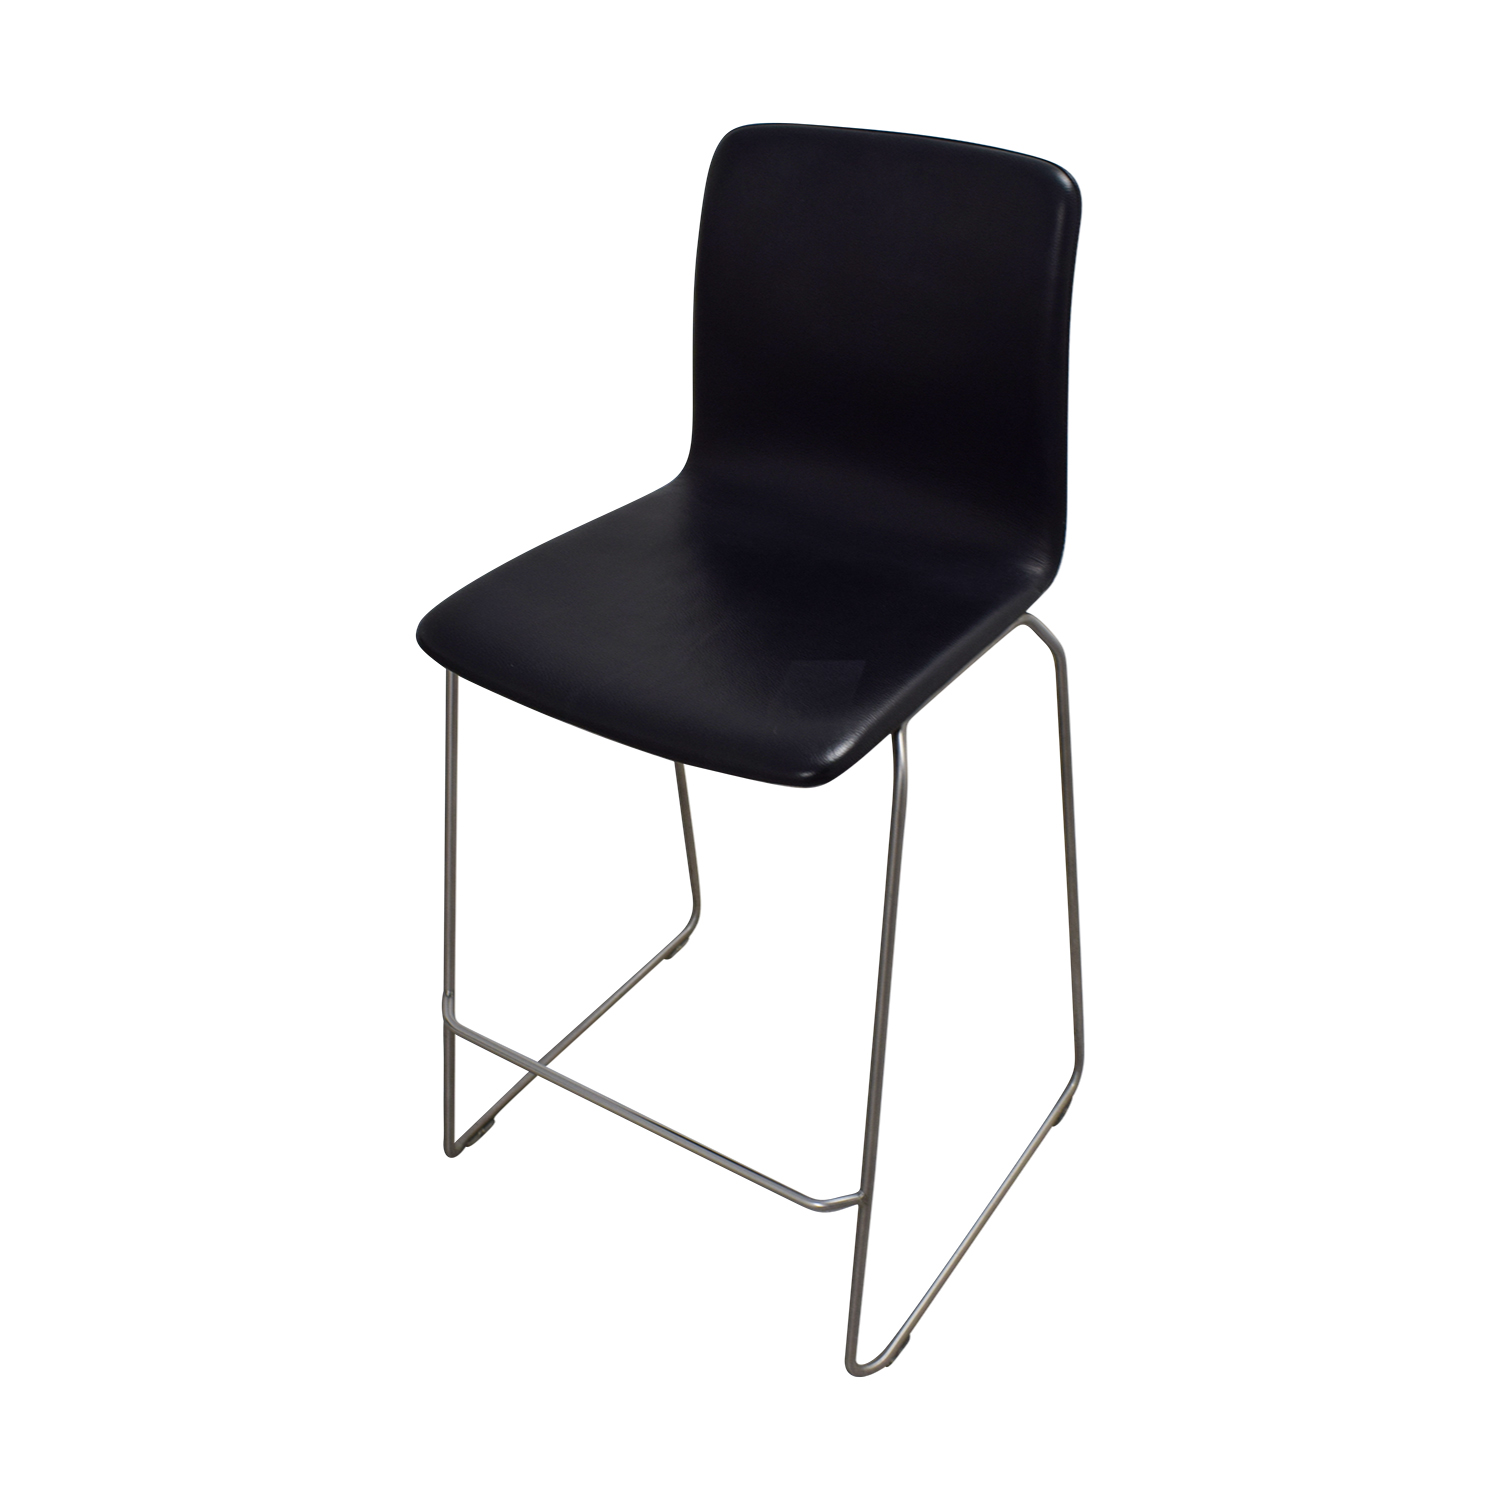 High Table And Bar Stools: HAY HAY Black And Chrome High Table And Bar